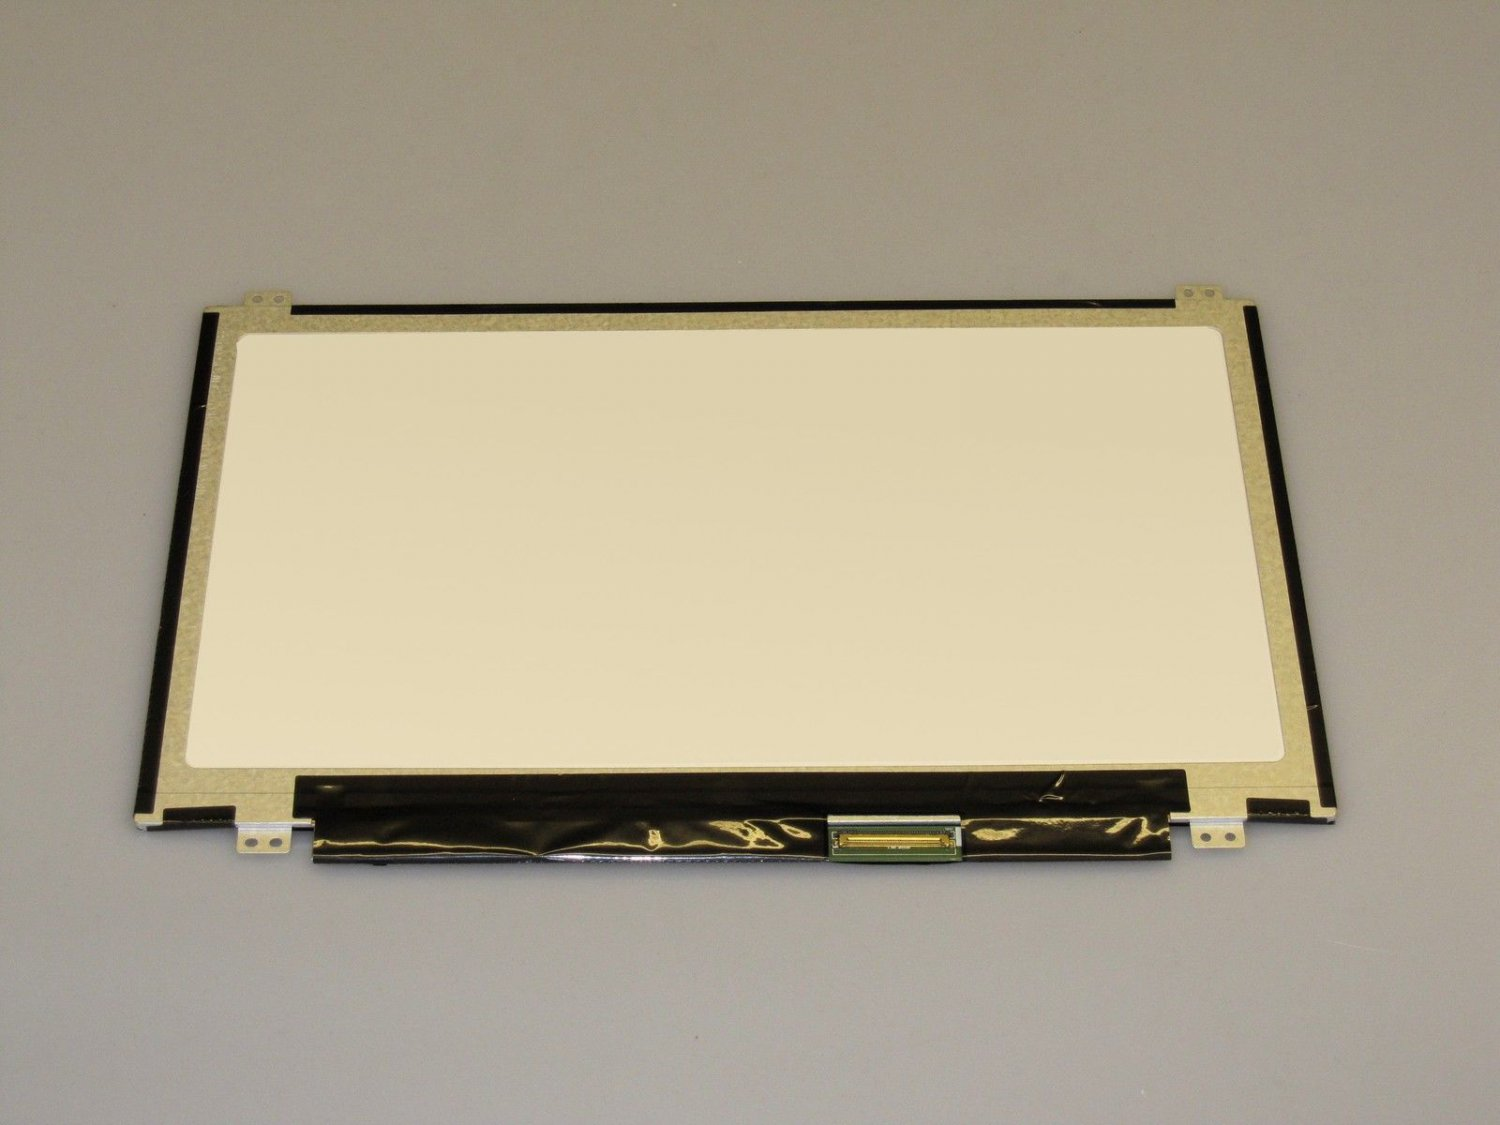 Buy New Acer Aspire V5 171 Laptop Screen 116 Shop Every Store On Keyboard One 121 131 123 Lcd For Wxga Hd